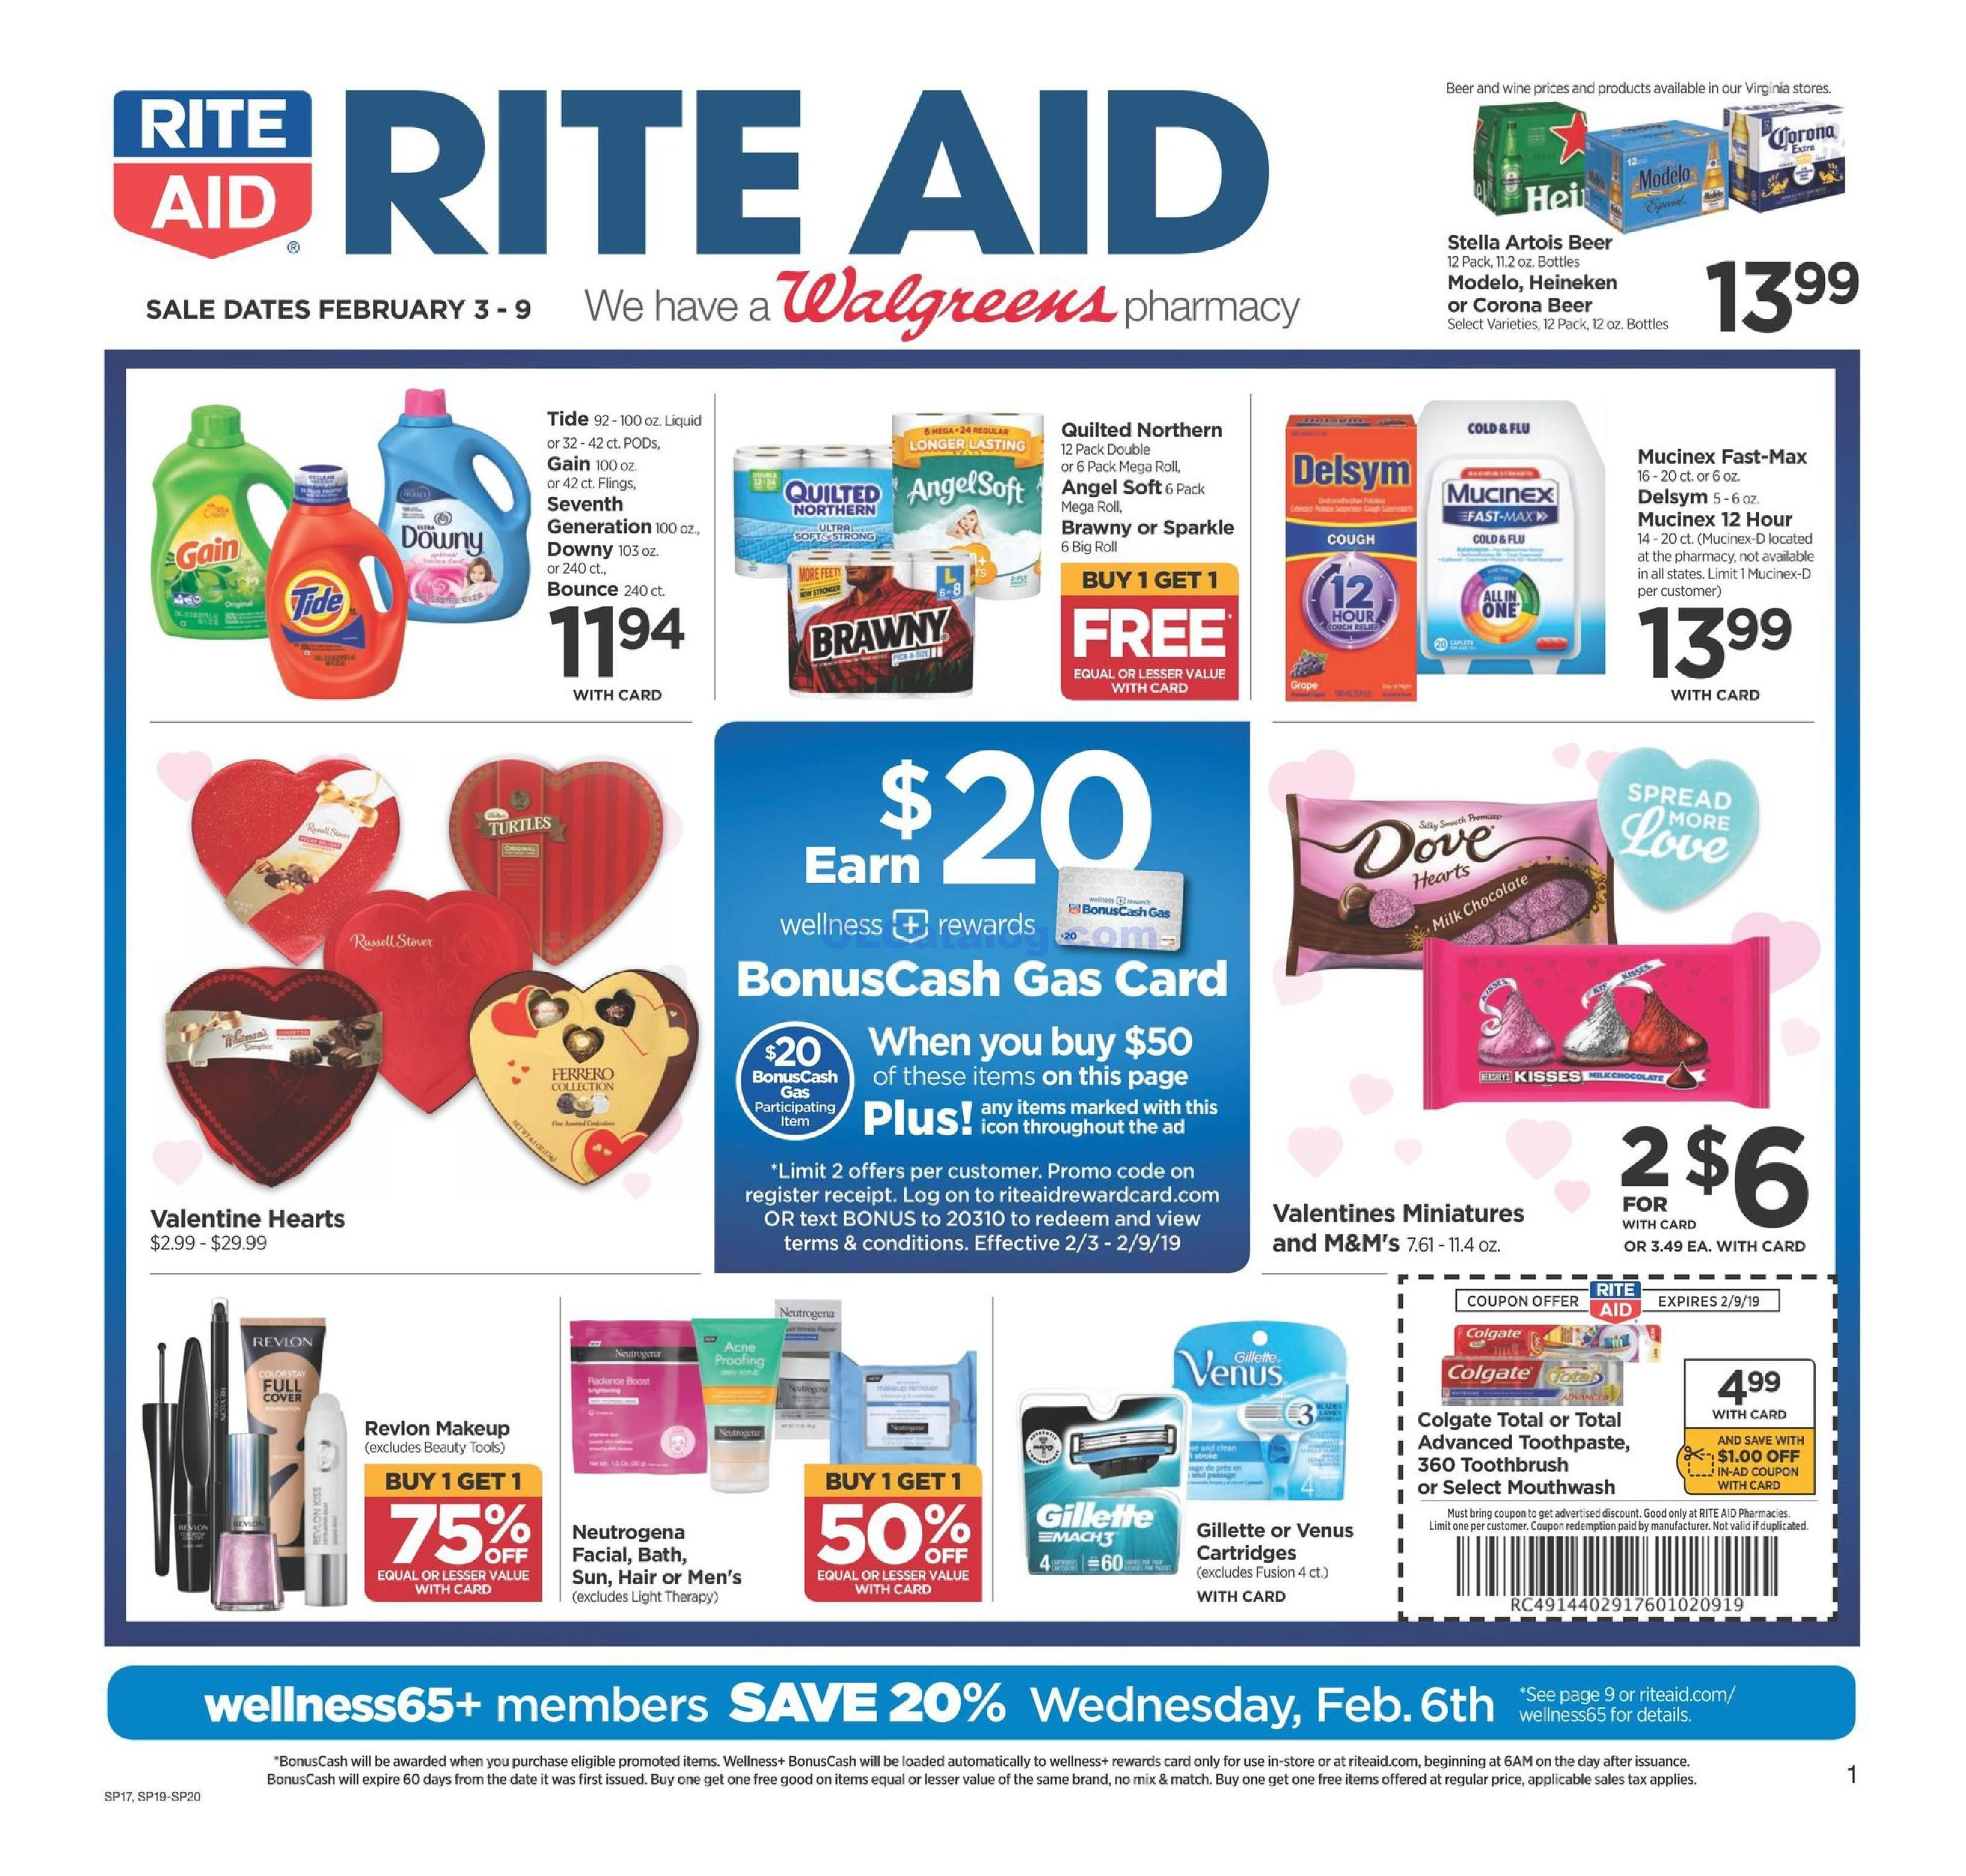 Rite Aid Weekly Ad February 3 9 2019 Do You Know What S In And What S Hot In The Rite Aid For This Week If You Haven T Using The Weekly Ads Rite Aid Ads